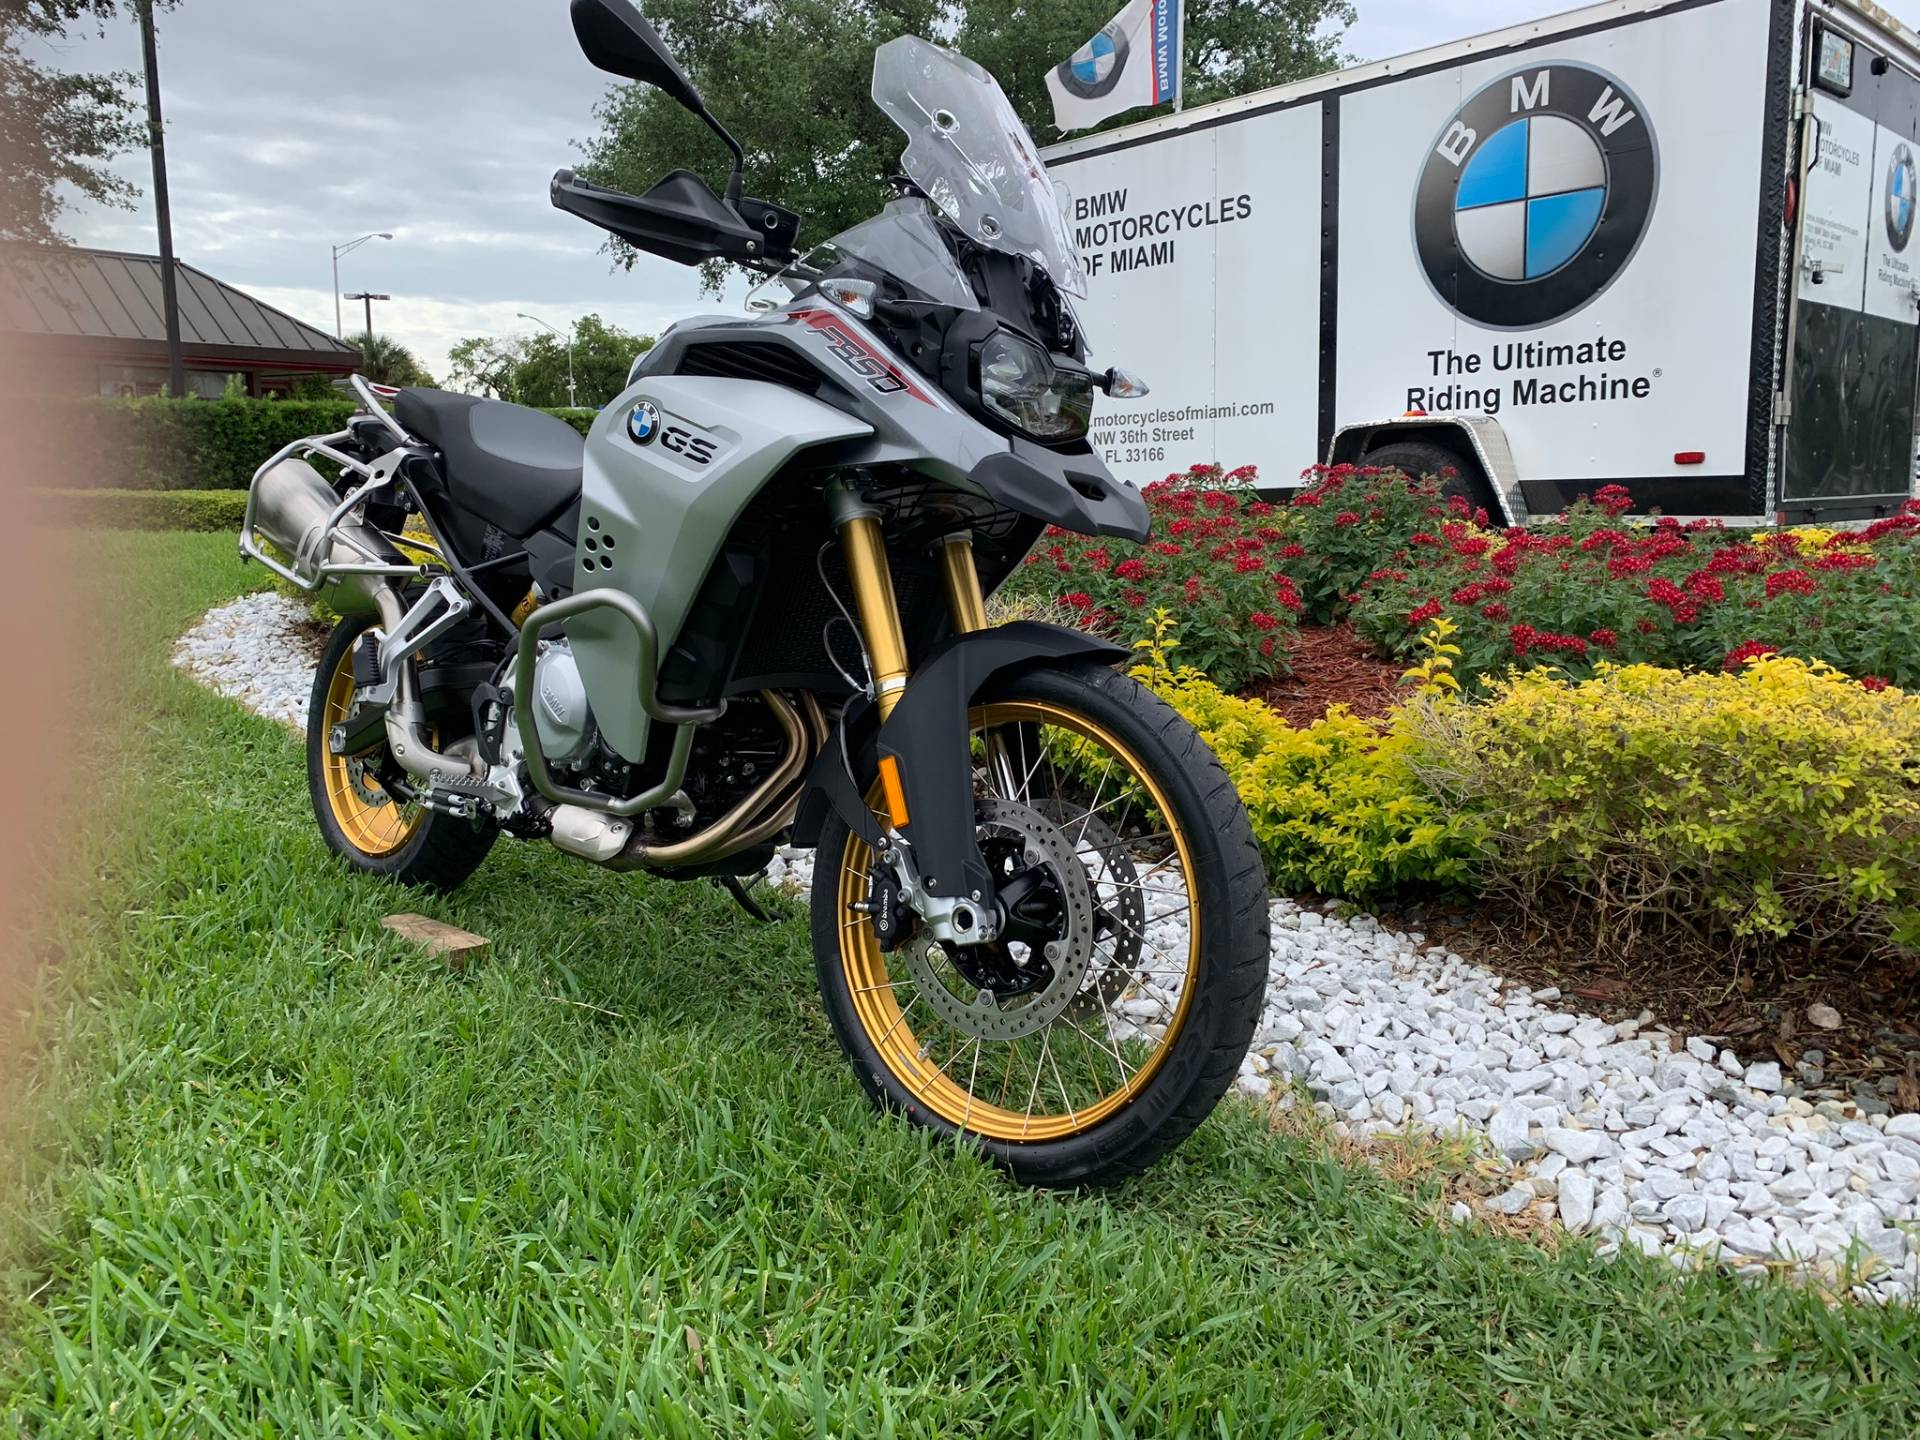 New 2019 BMW F 850 GSA for sale, BMW F 850GSA for sale, BMW Motorcycle F850GSA, new BMW 850 Adventure, Adventure. BMW Motorcycles of Miami, Motorcycles of Miami, Motorcycles Miami, New Motorcycles, Used Motorcycles, pre-owned. #BMWMotorcyclesOfMiami #MotorcyclesOfMiami #MotorcyclesMiami - Photo 1